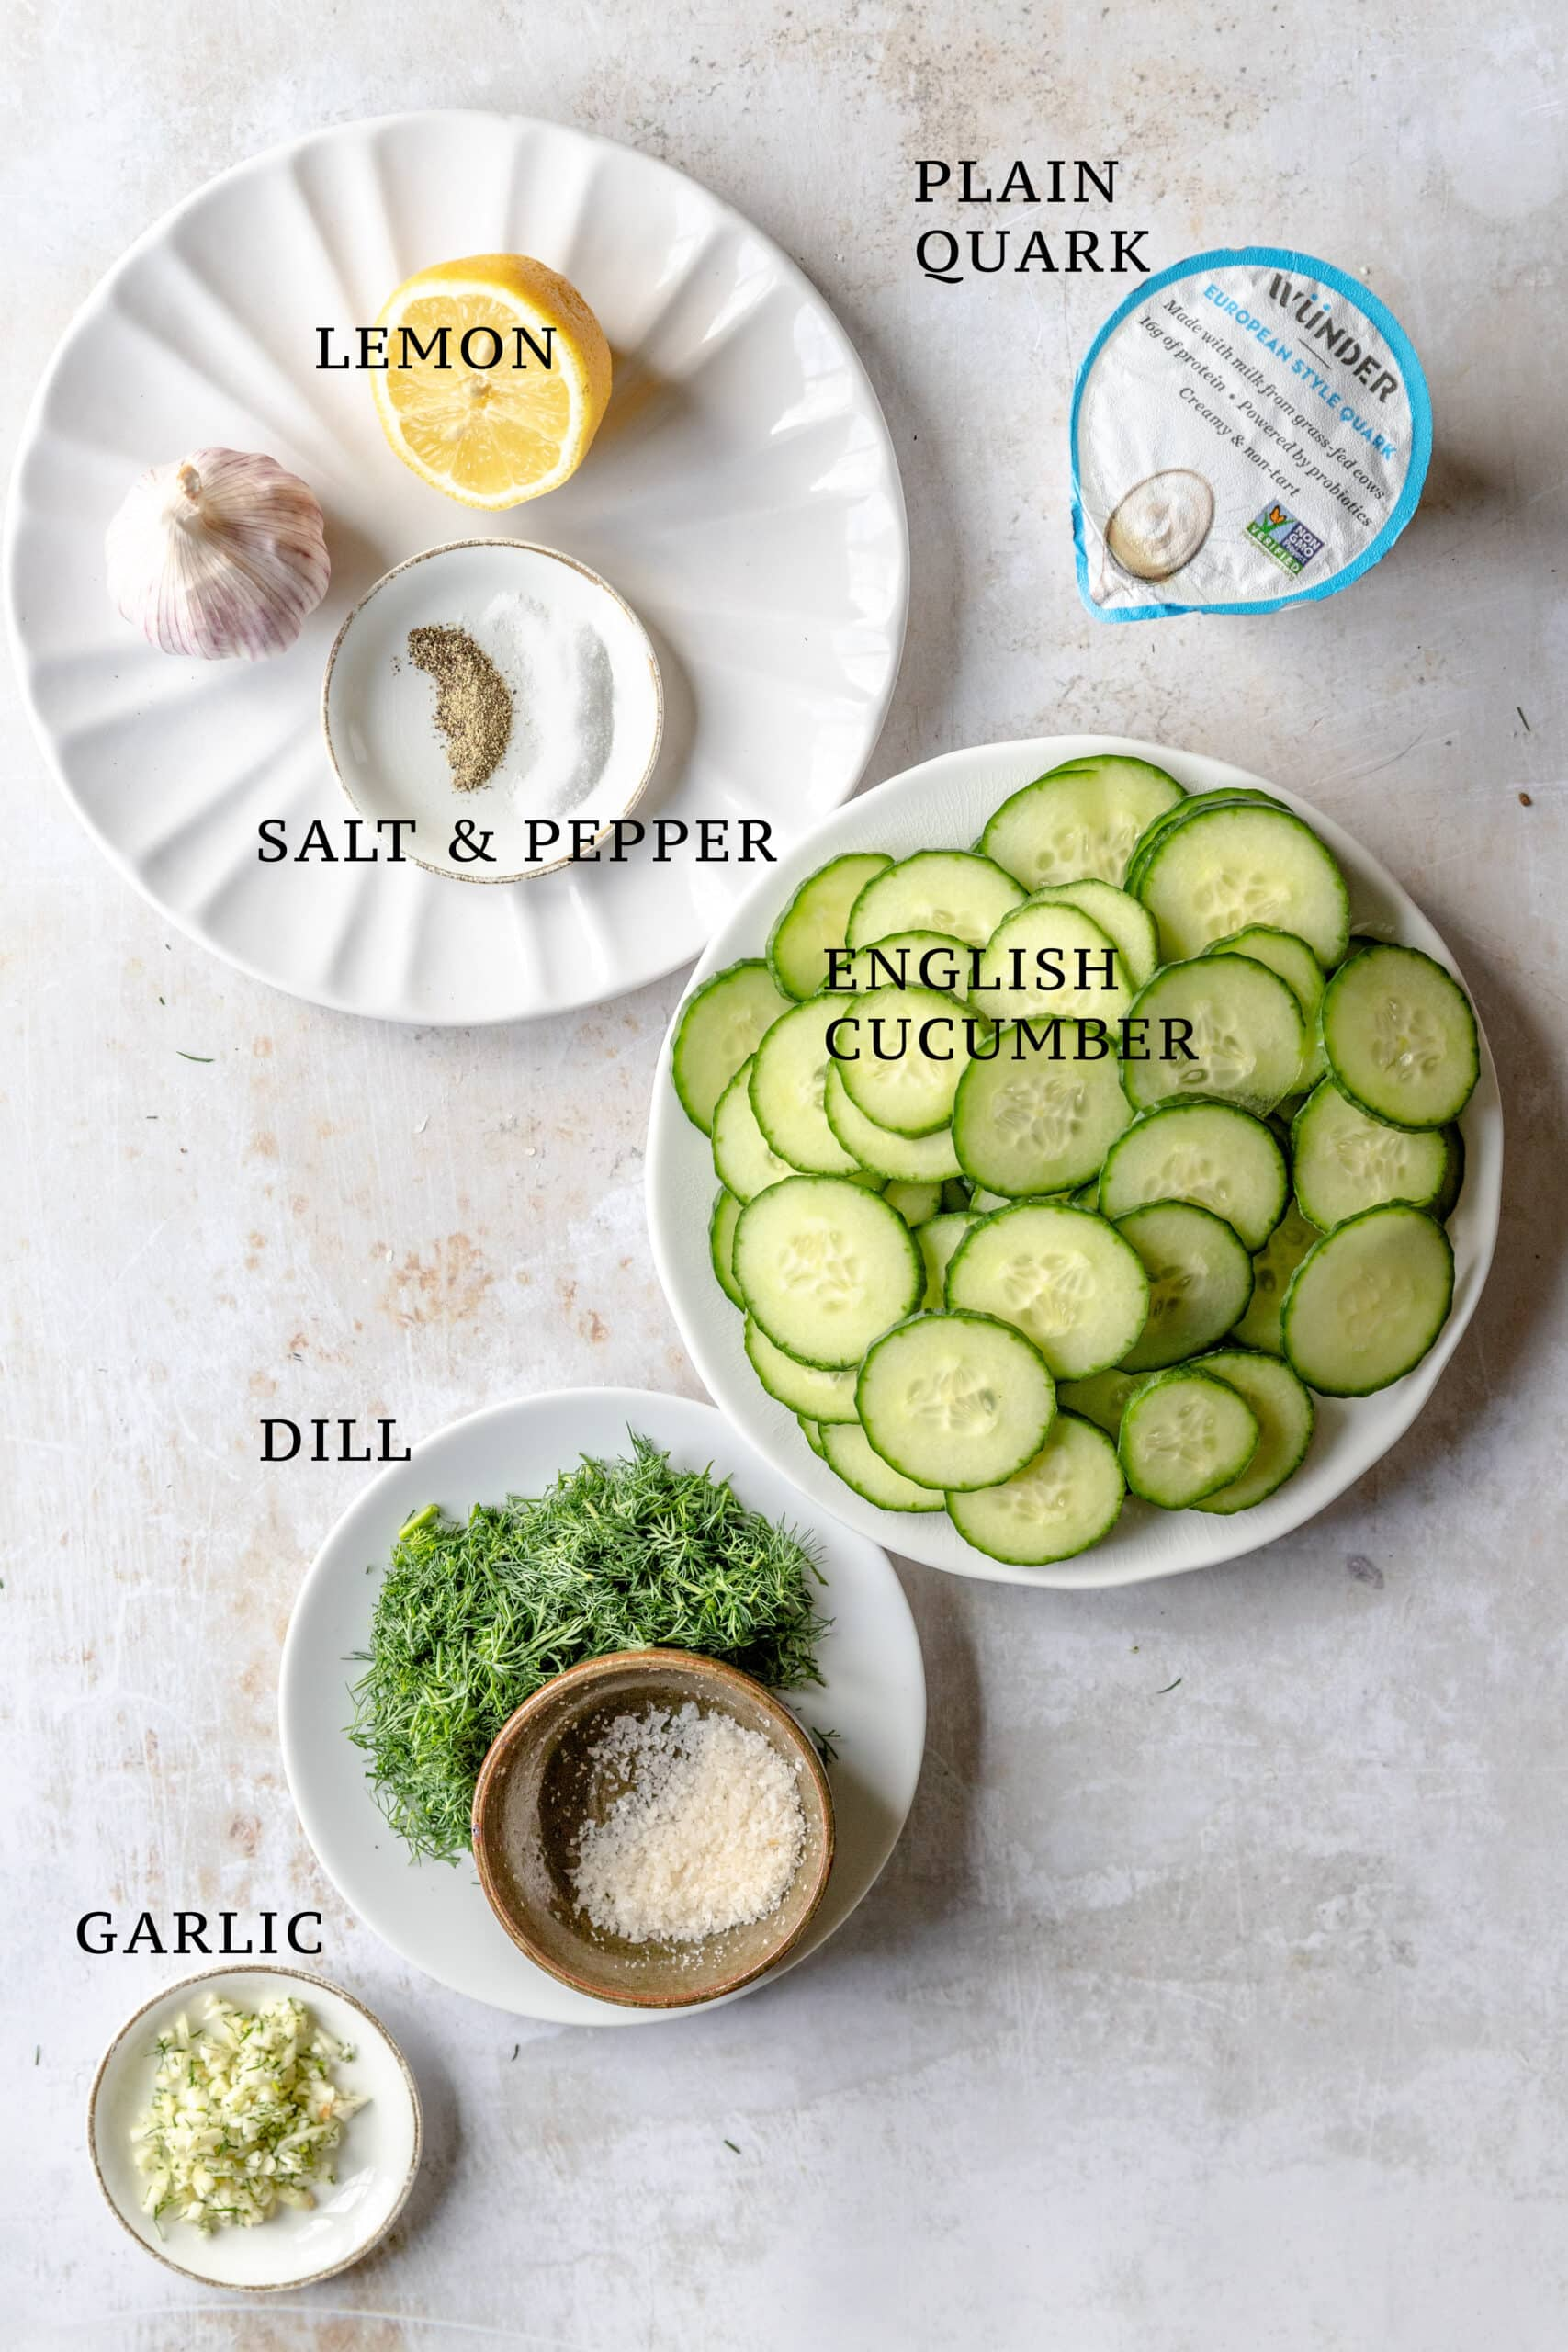 Ingredients spread out that are needed for gurken salat - cucumber salad.